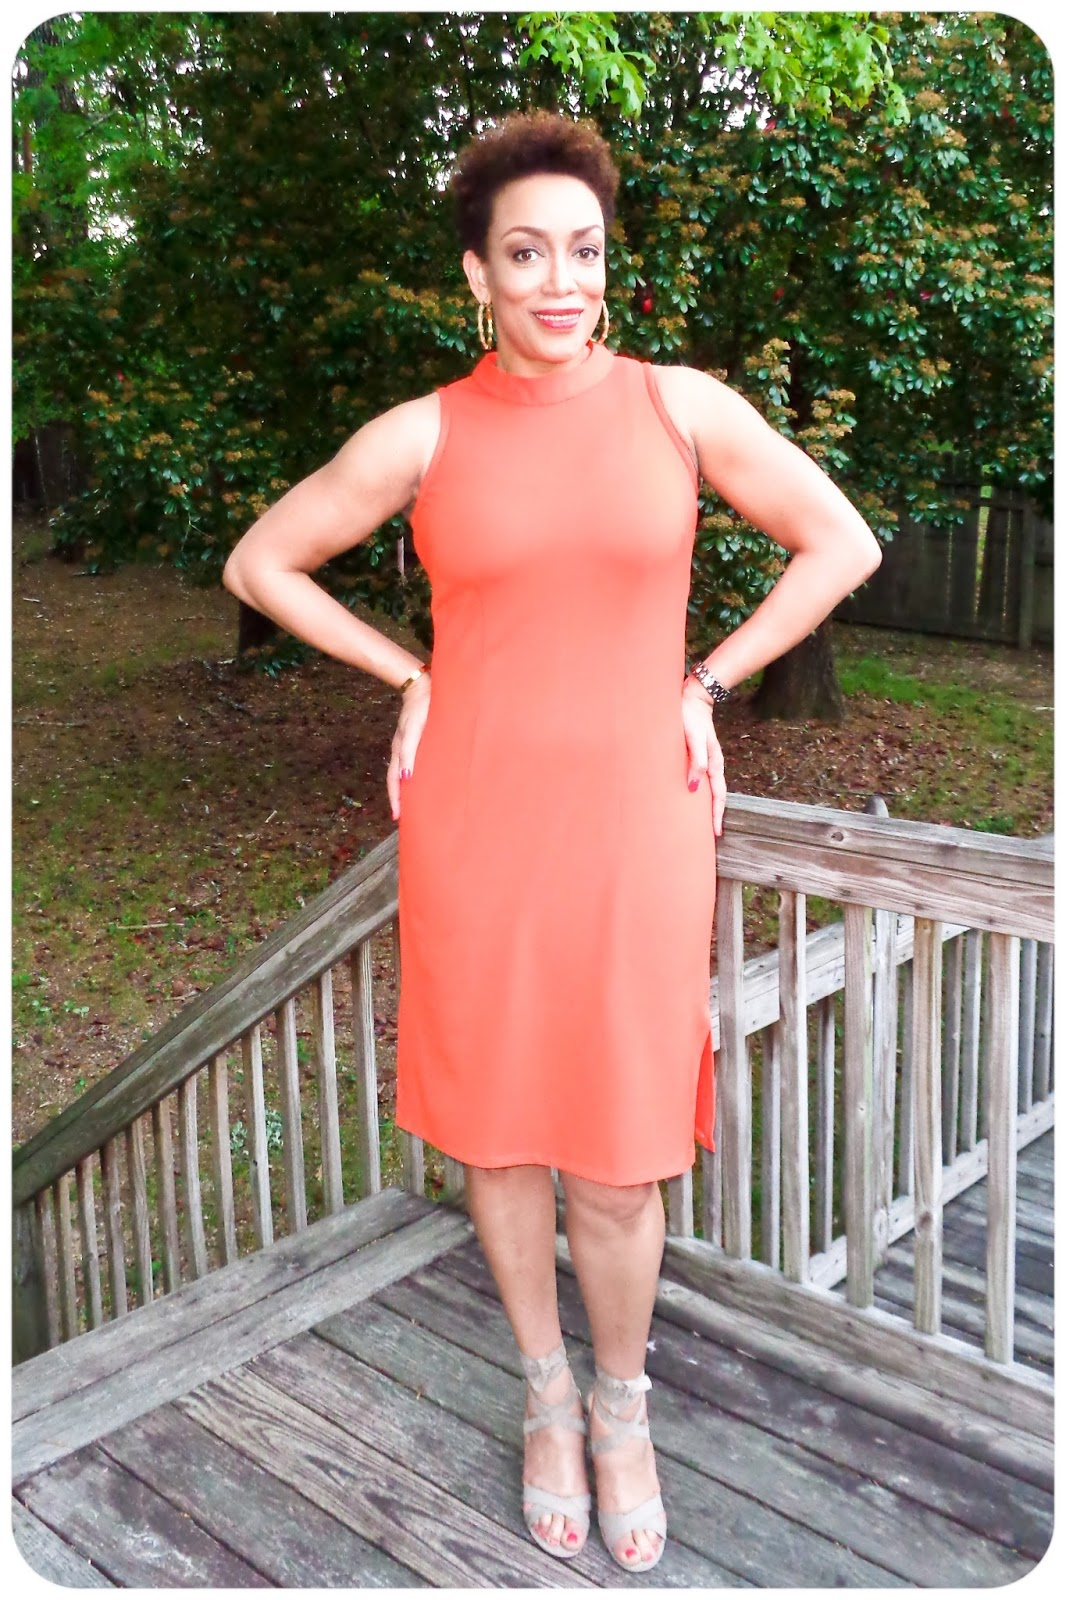 c59d148dd0f I've collaborated with Kohl's to share with you my current favorite  shapewear pieces that are must haves for the most flattering look.